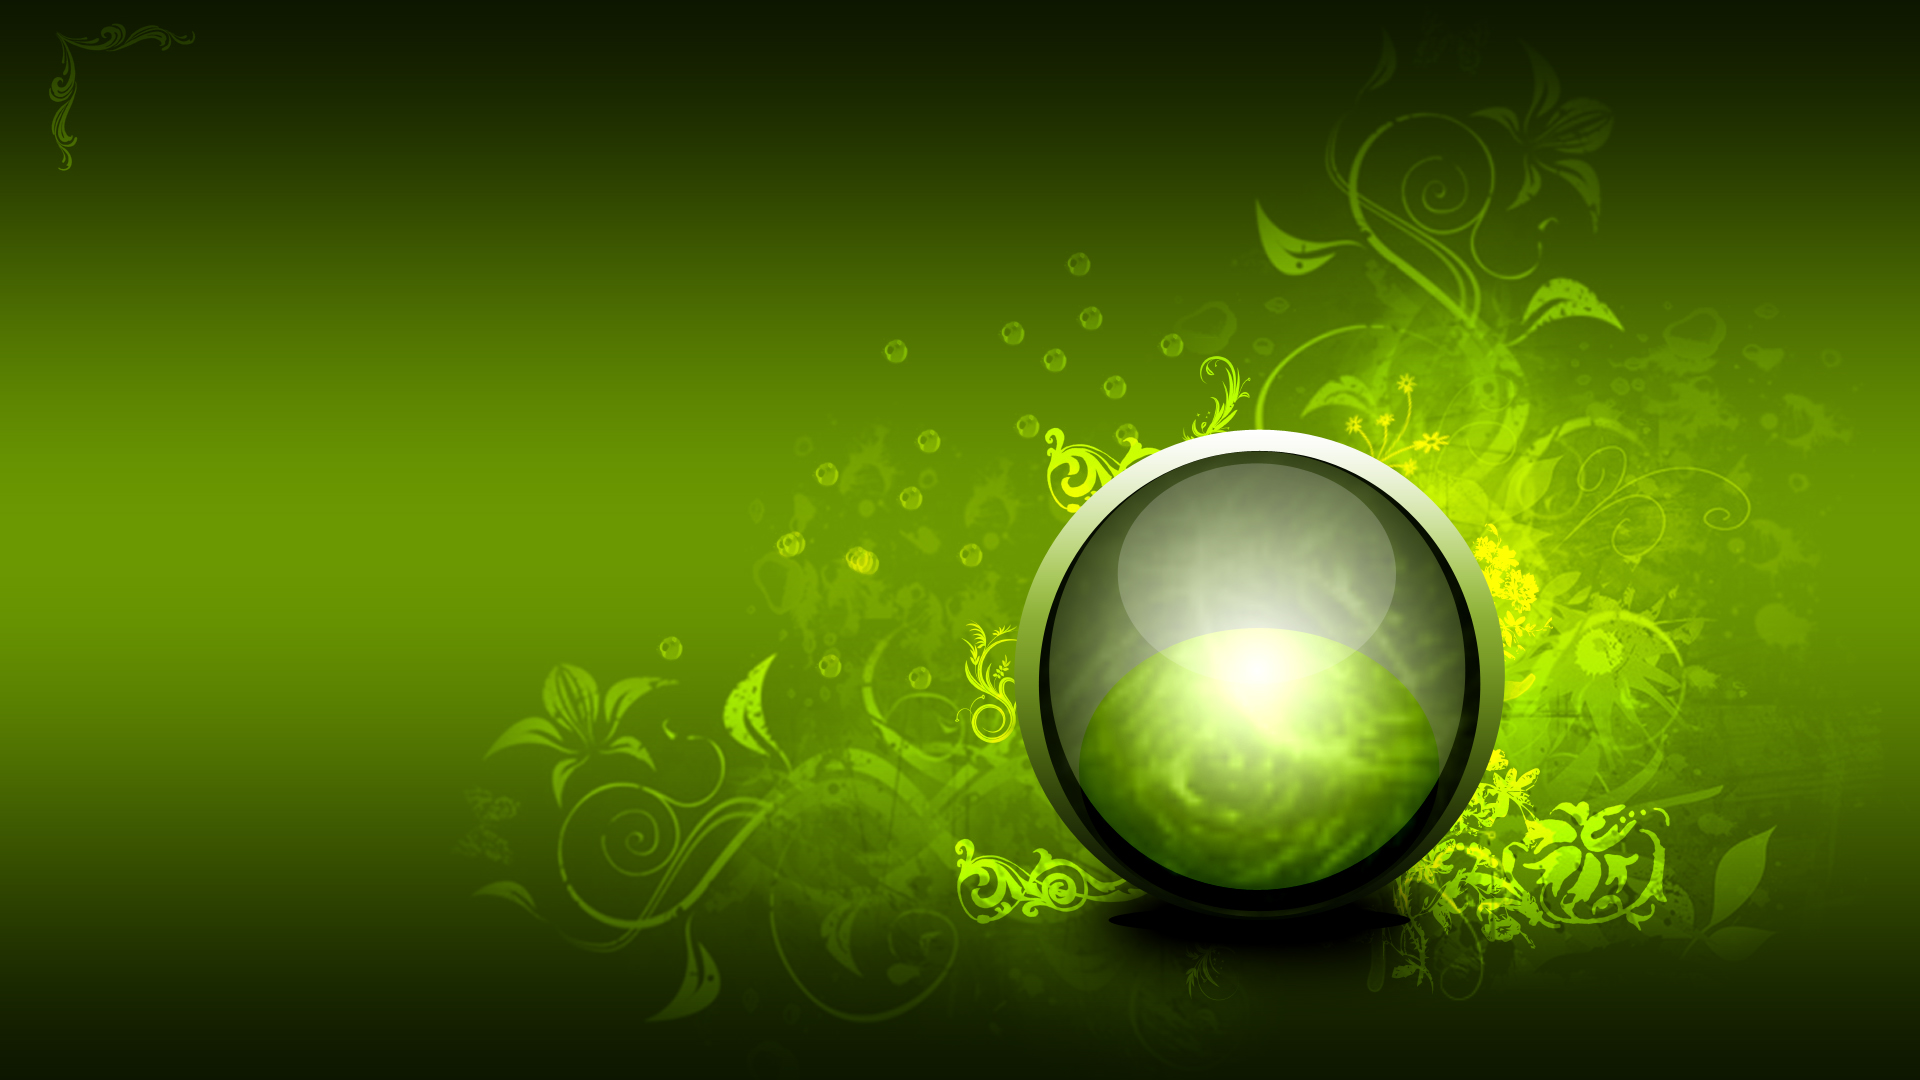 green background hd 3d - photo #19